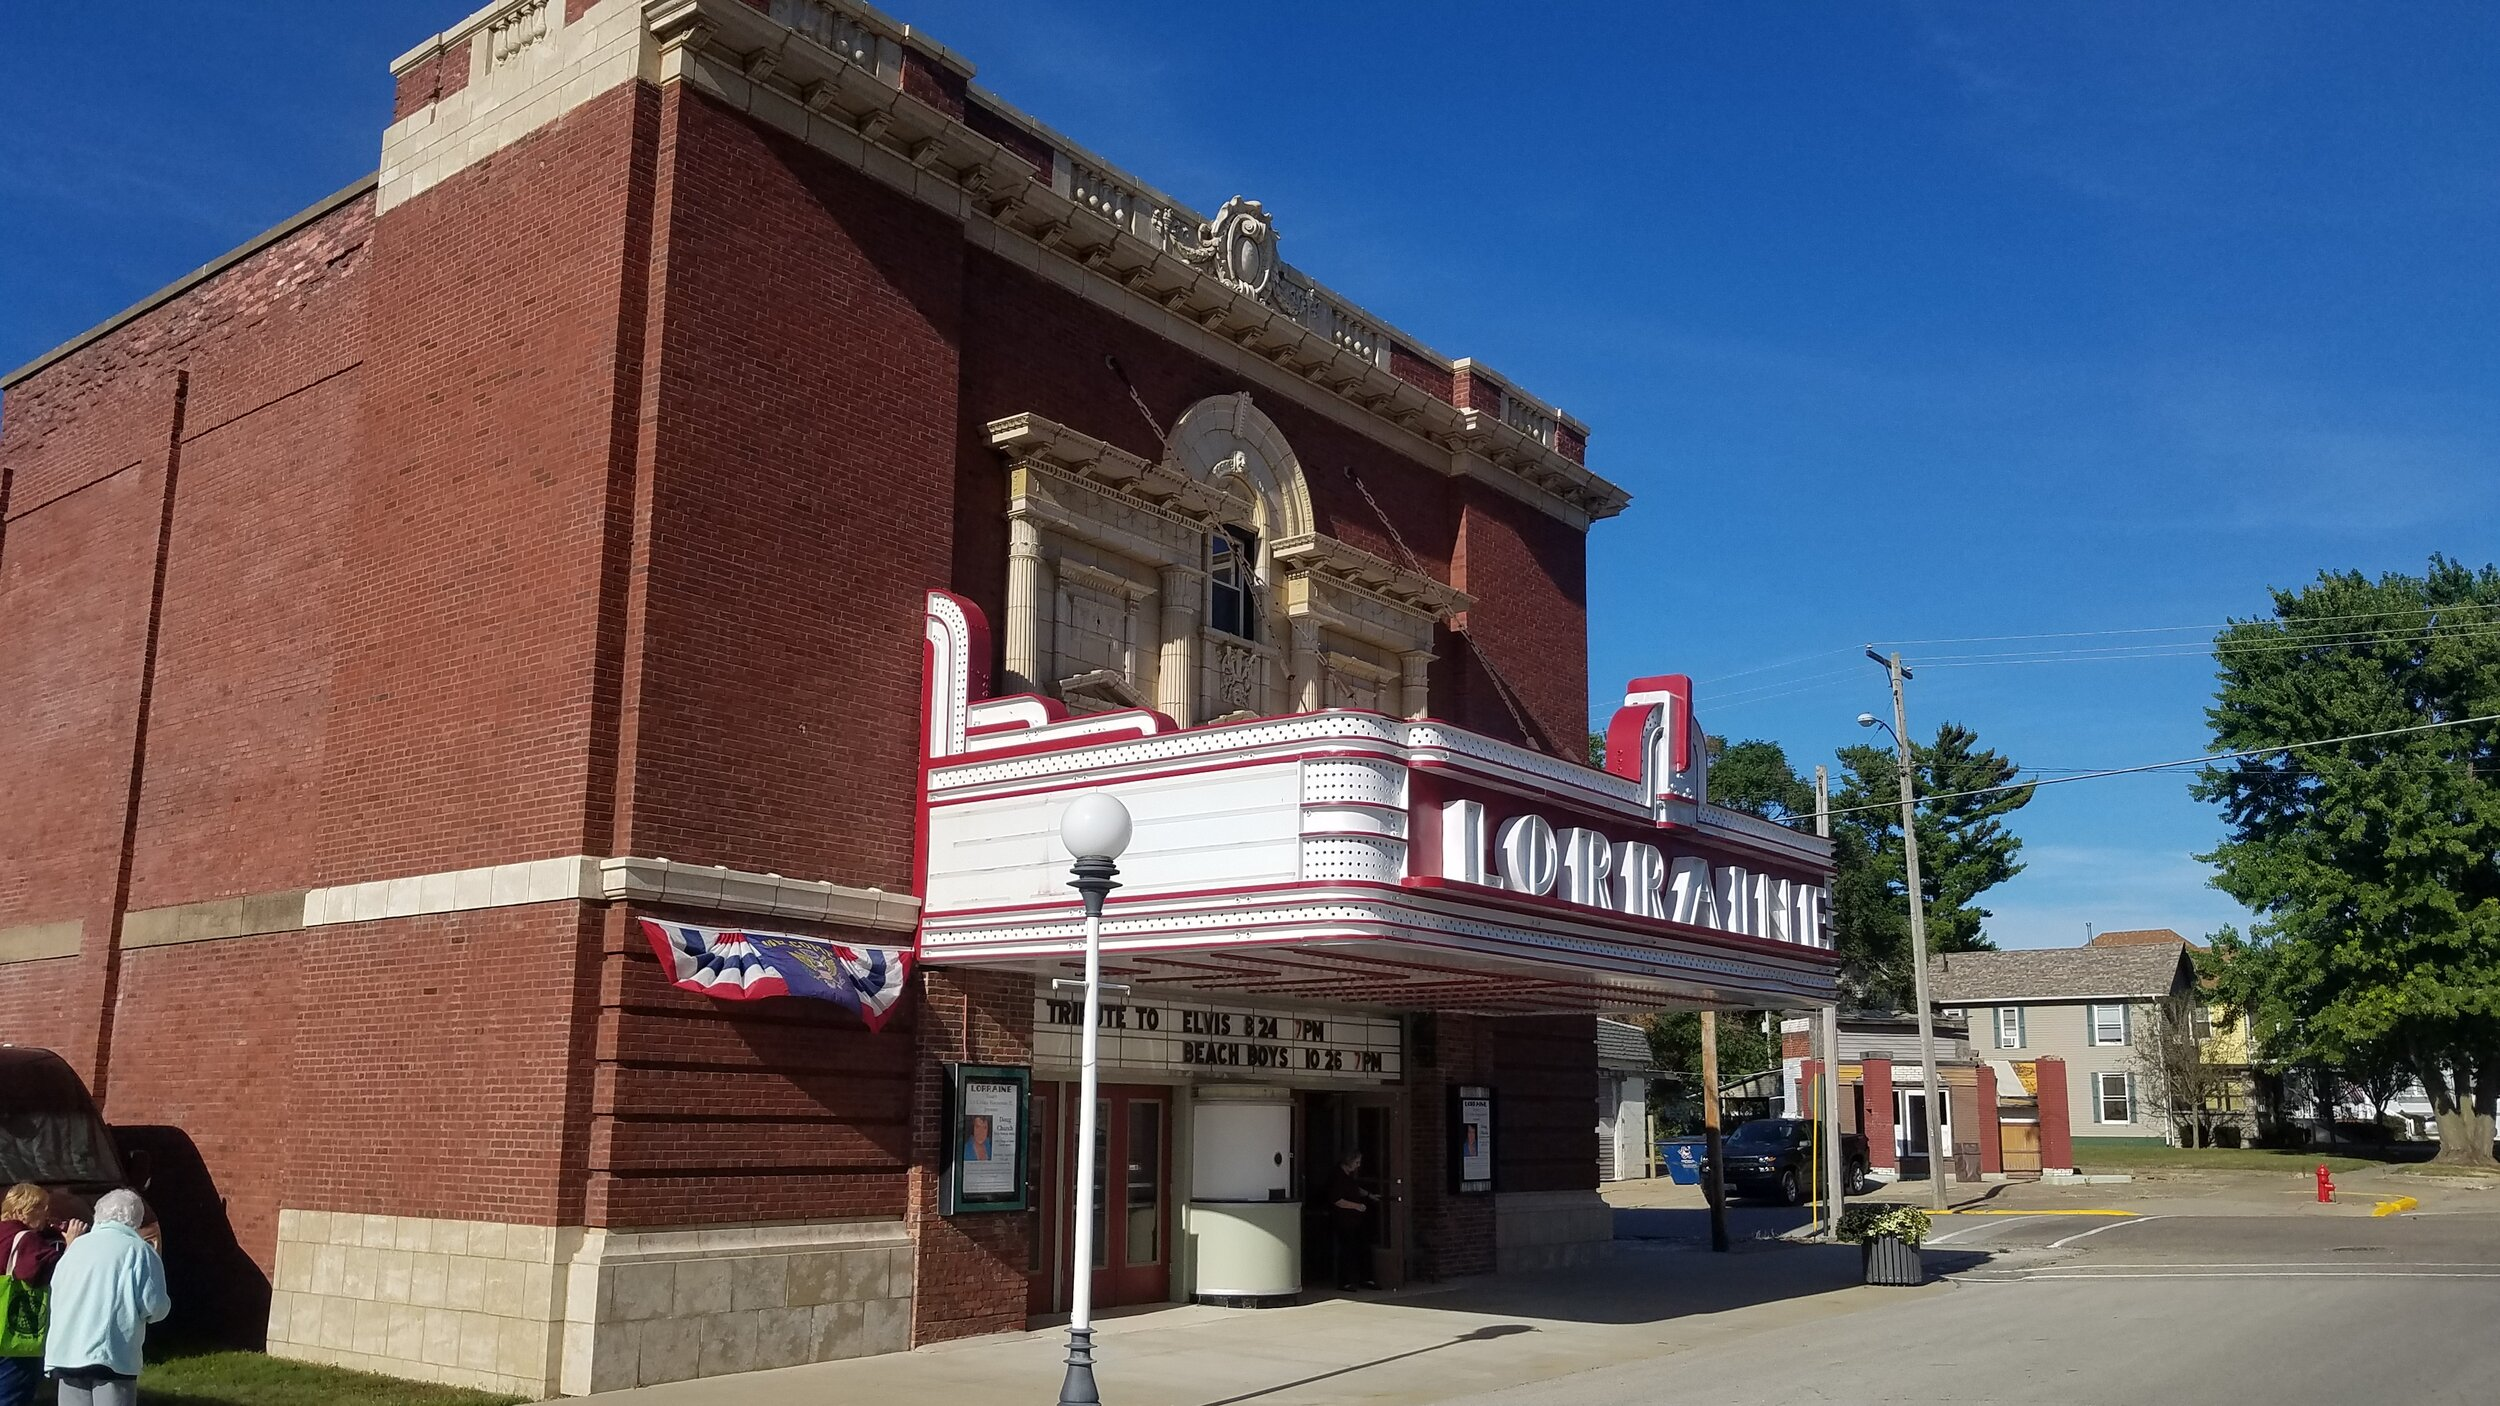 The Lorraine, located on Main Street in downtown Lorraine, operated as a movie theatre from 1922 to 2012. Today, the Save The Lorraine Foundation operates the theatre as a multi-use venue, and is continuing its restoration. ( Photo Credit: Jim Meadows/Illinois Public Media)